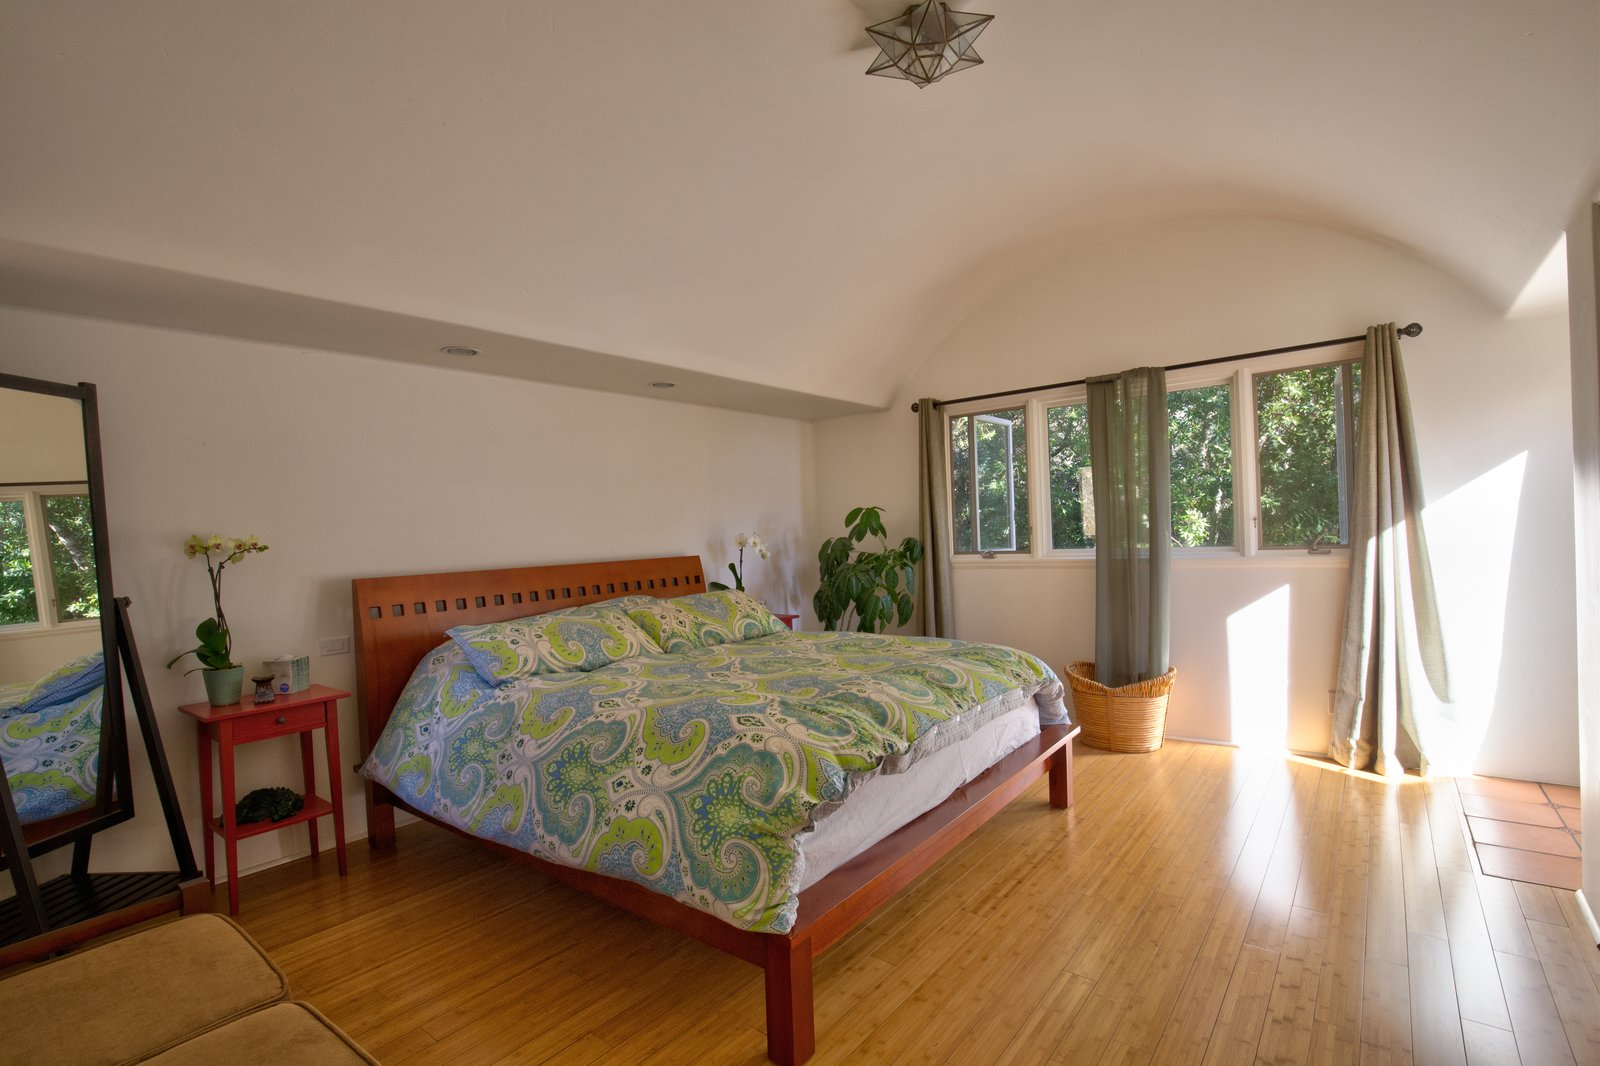 Bedroom, Medium Hardwood Floor, Ceiling Lighting, Night Stands, and Bed The main bedroom has a generous closet and outdoor access.  Photo 8 of 10 in This Santa Barbara Yurt Is the Ultimate Place to Recharge